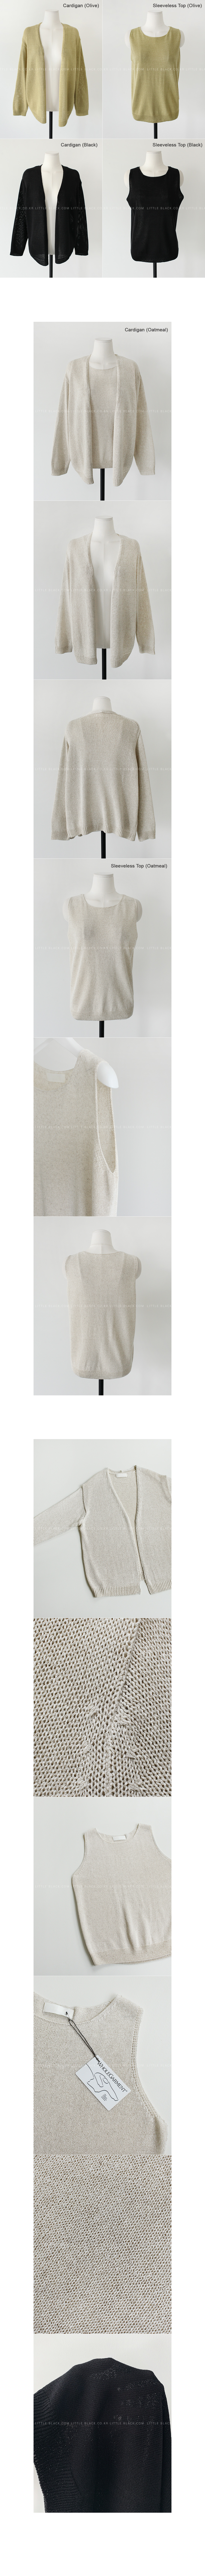 Open Front Knit Cardigan and Sleeveless Top|